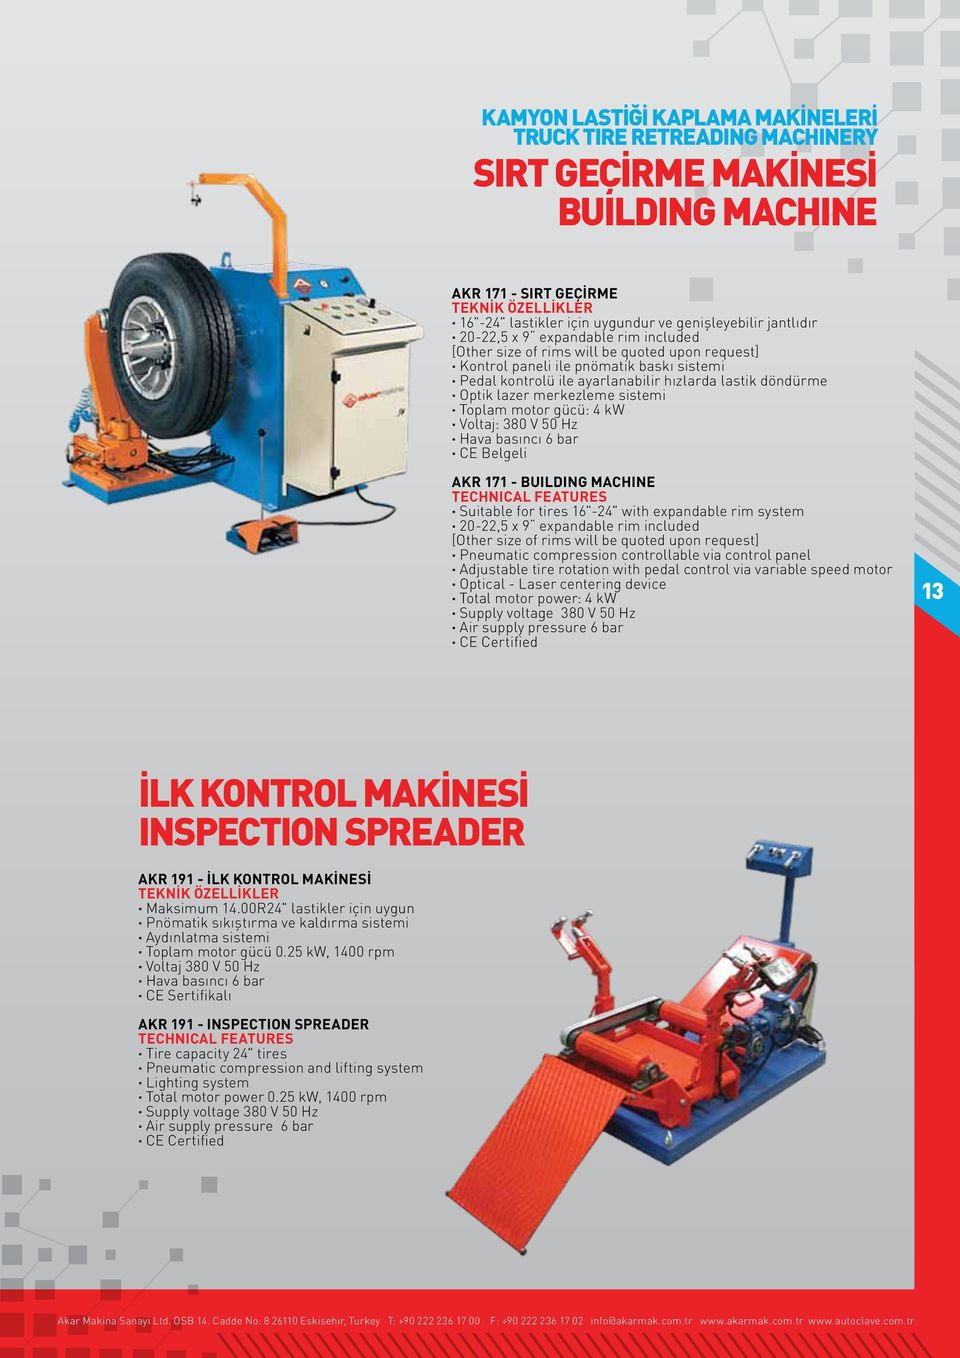 "sistemi Toplam motor gücü: 4 kw Voltaj: 380 V 50 Hz Hava basıncı 6 bar CE Belgeli AKR 171 - BUILDING MACHINE Suitable for tires 16""-24"" with expandable rim system 20-22,5 x 9 expandable rim included"